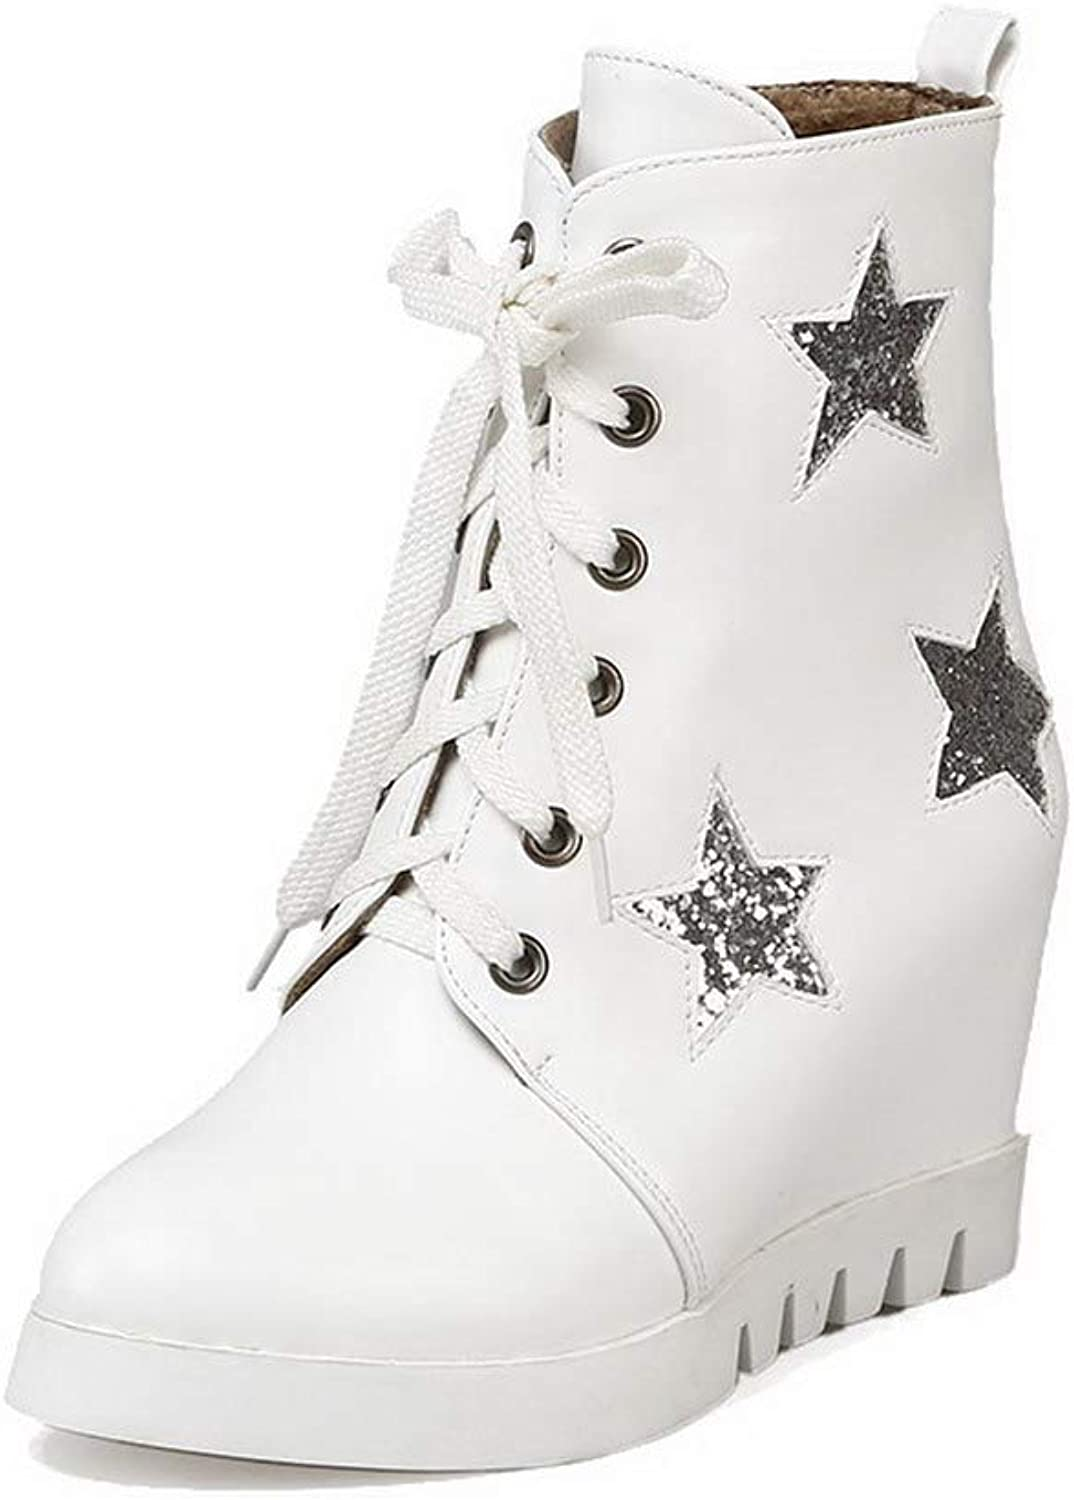 WeenFashion Women's Lace-Up High-Heels Pu Assorted color Low-Top Boots, AMGXX126053